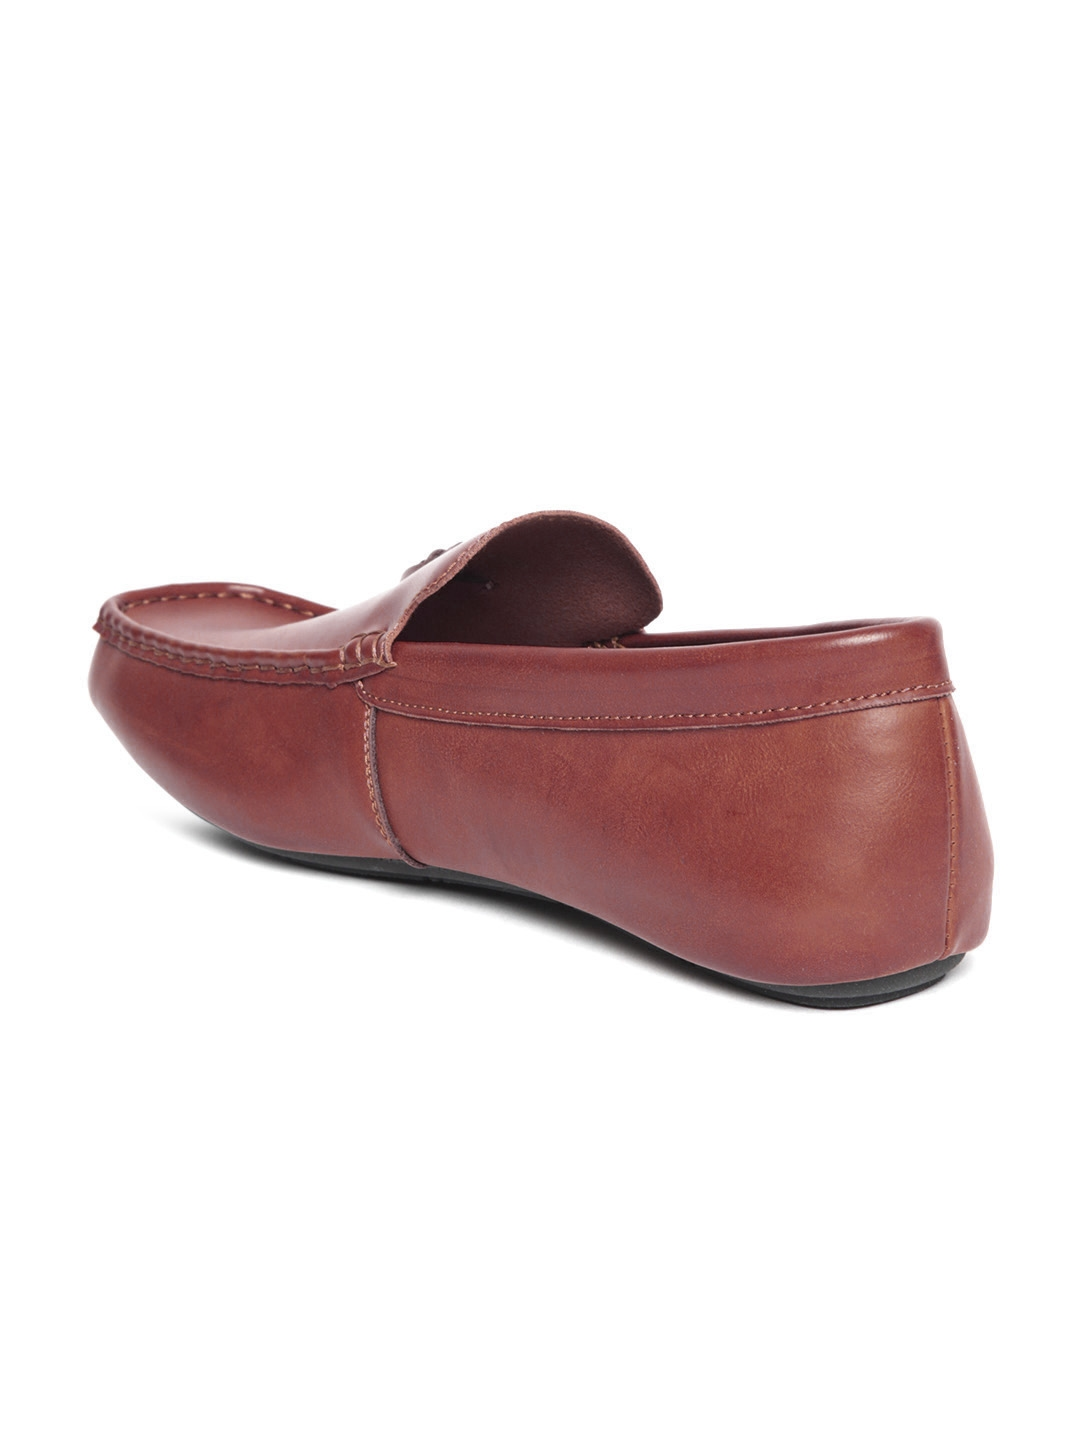 1ca9734261 Buy Arrow Men Red Leather Tassel Loafers - Casual Shoes for Men ...